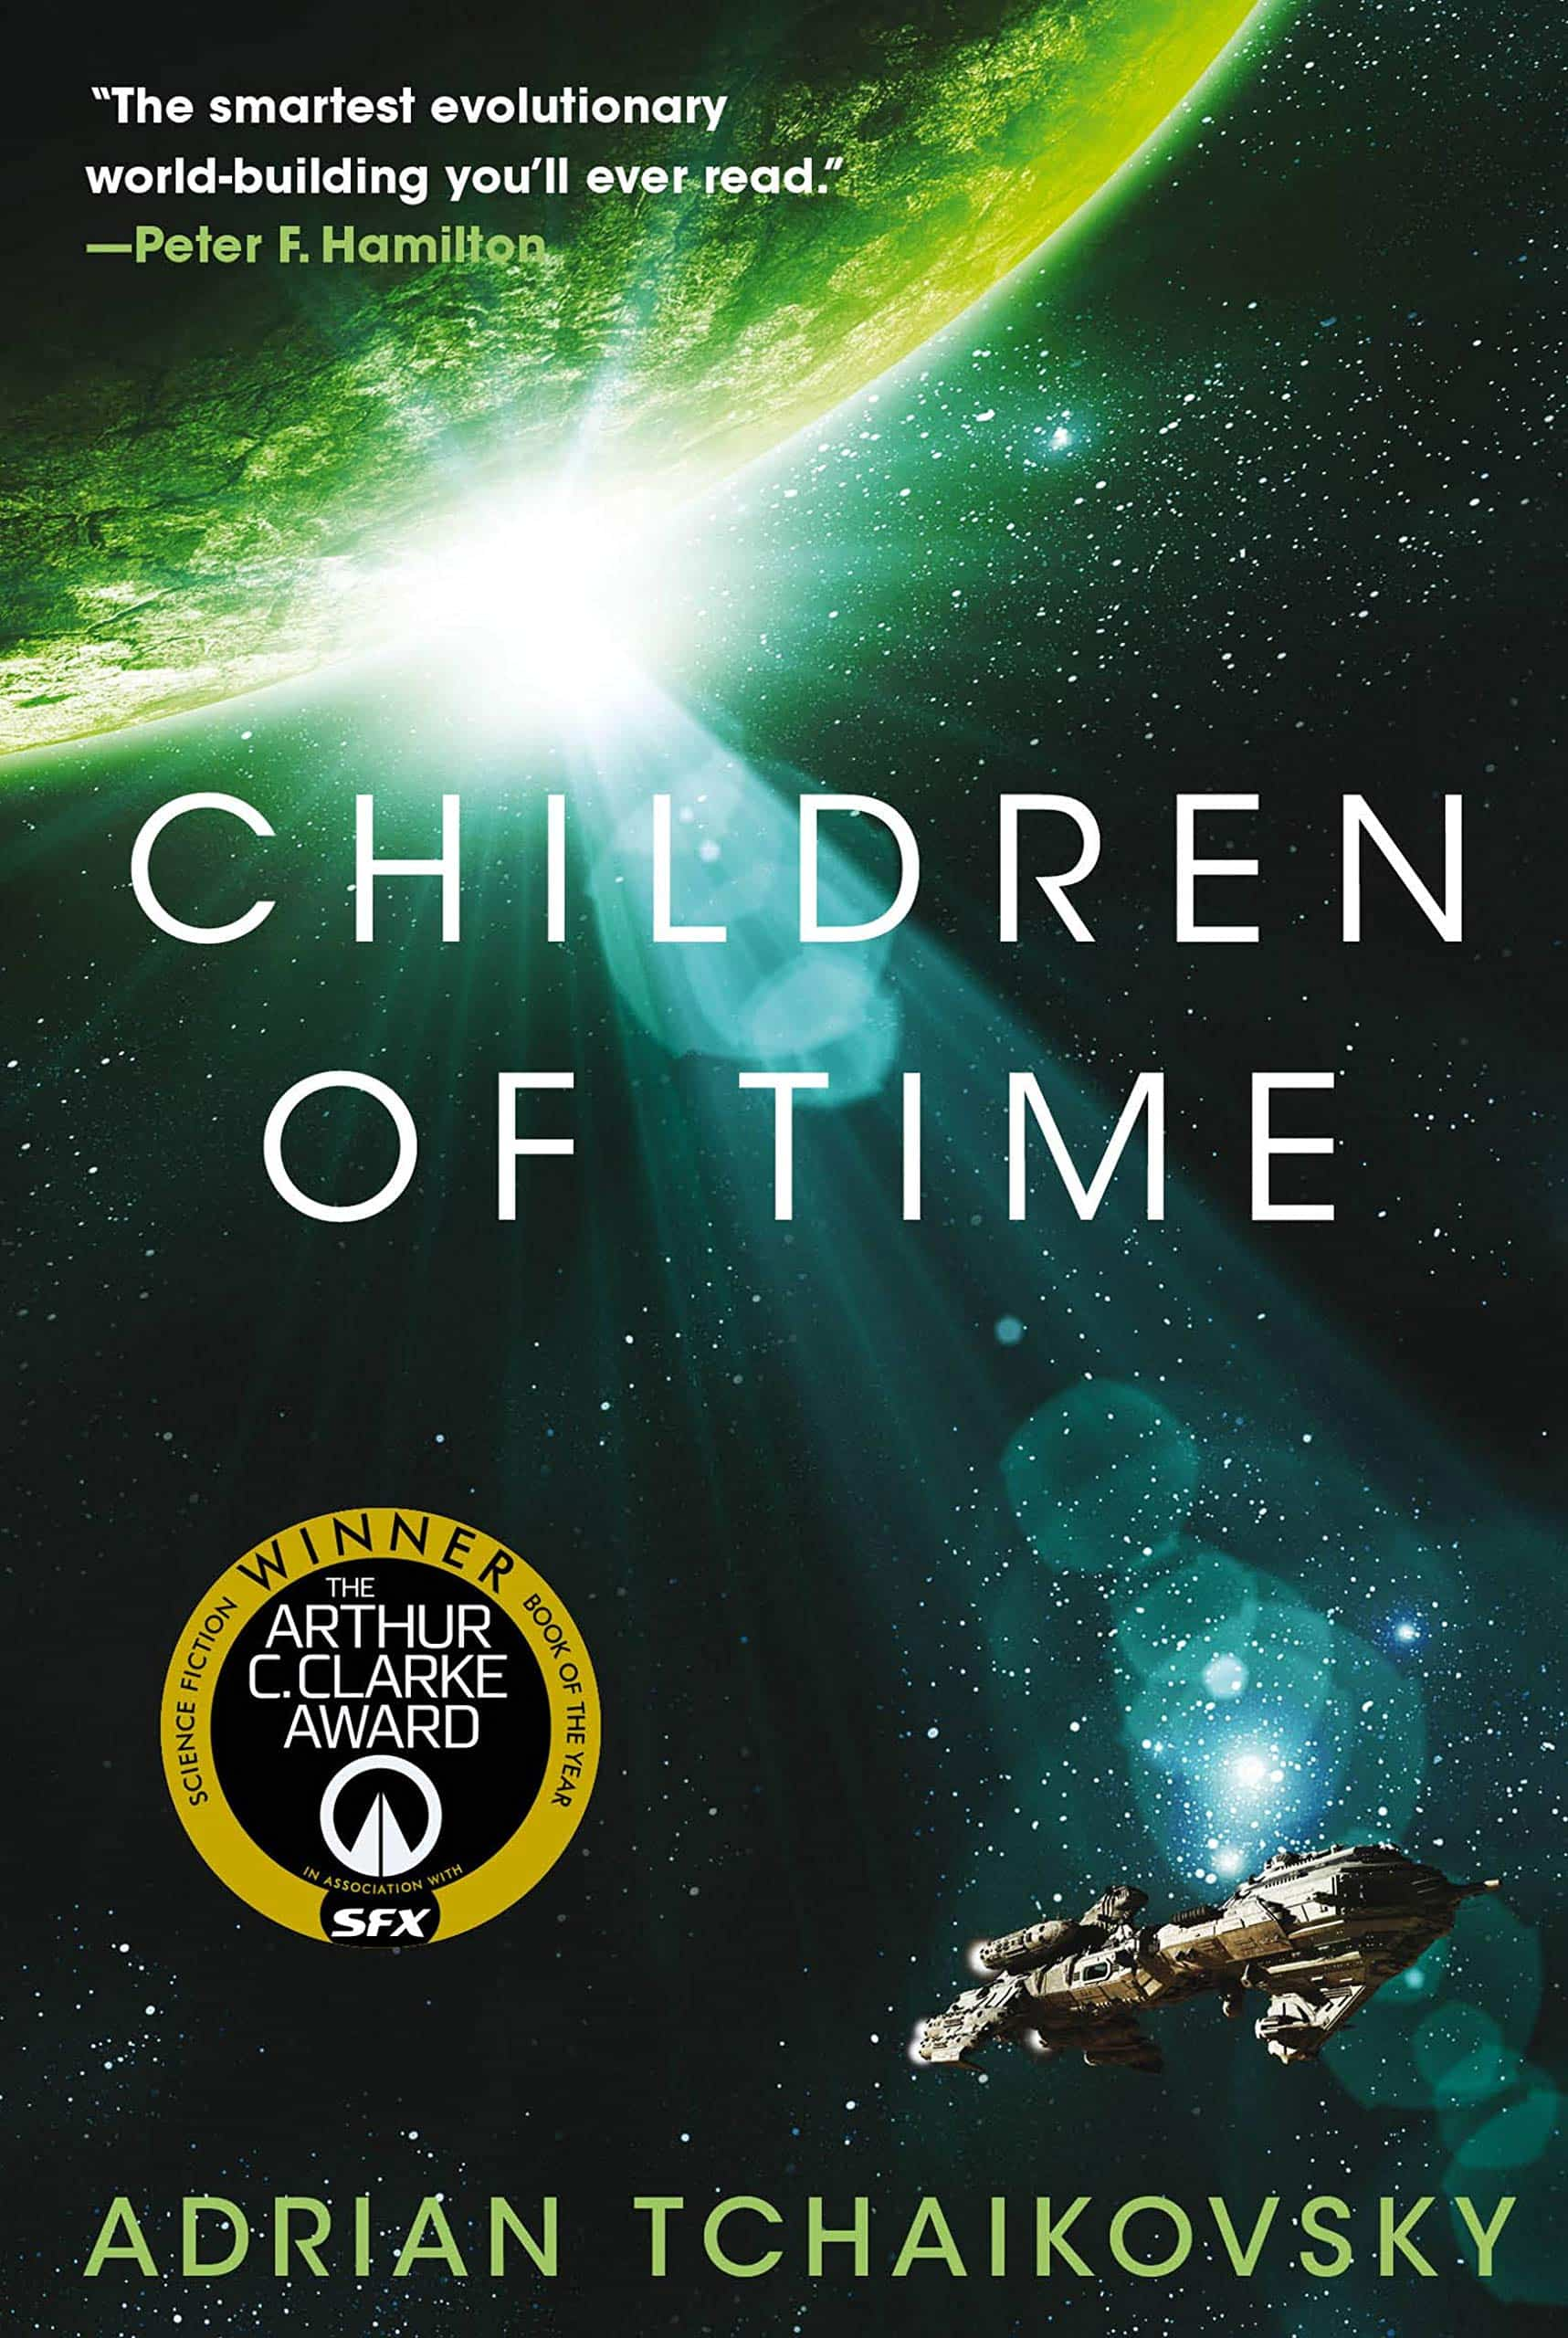 The cover of Children of Time